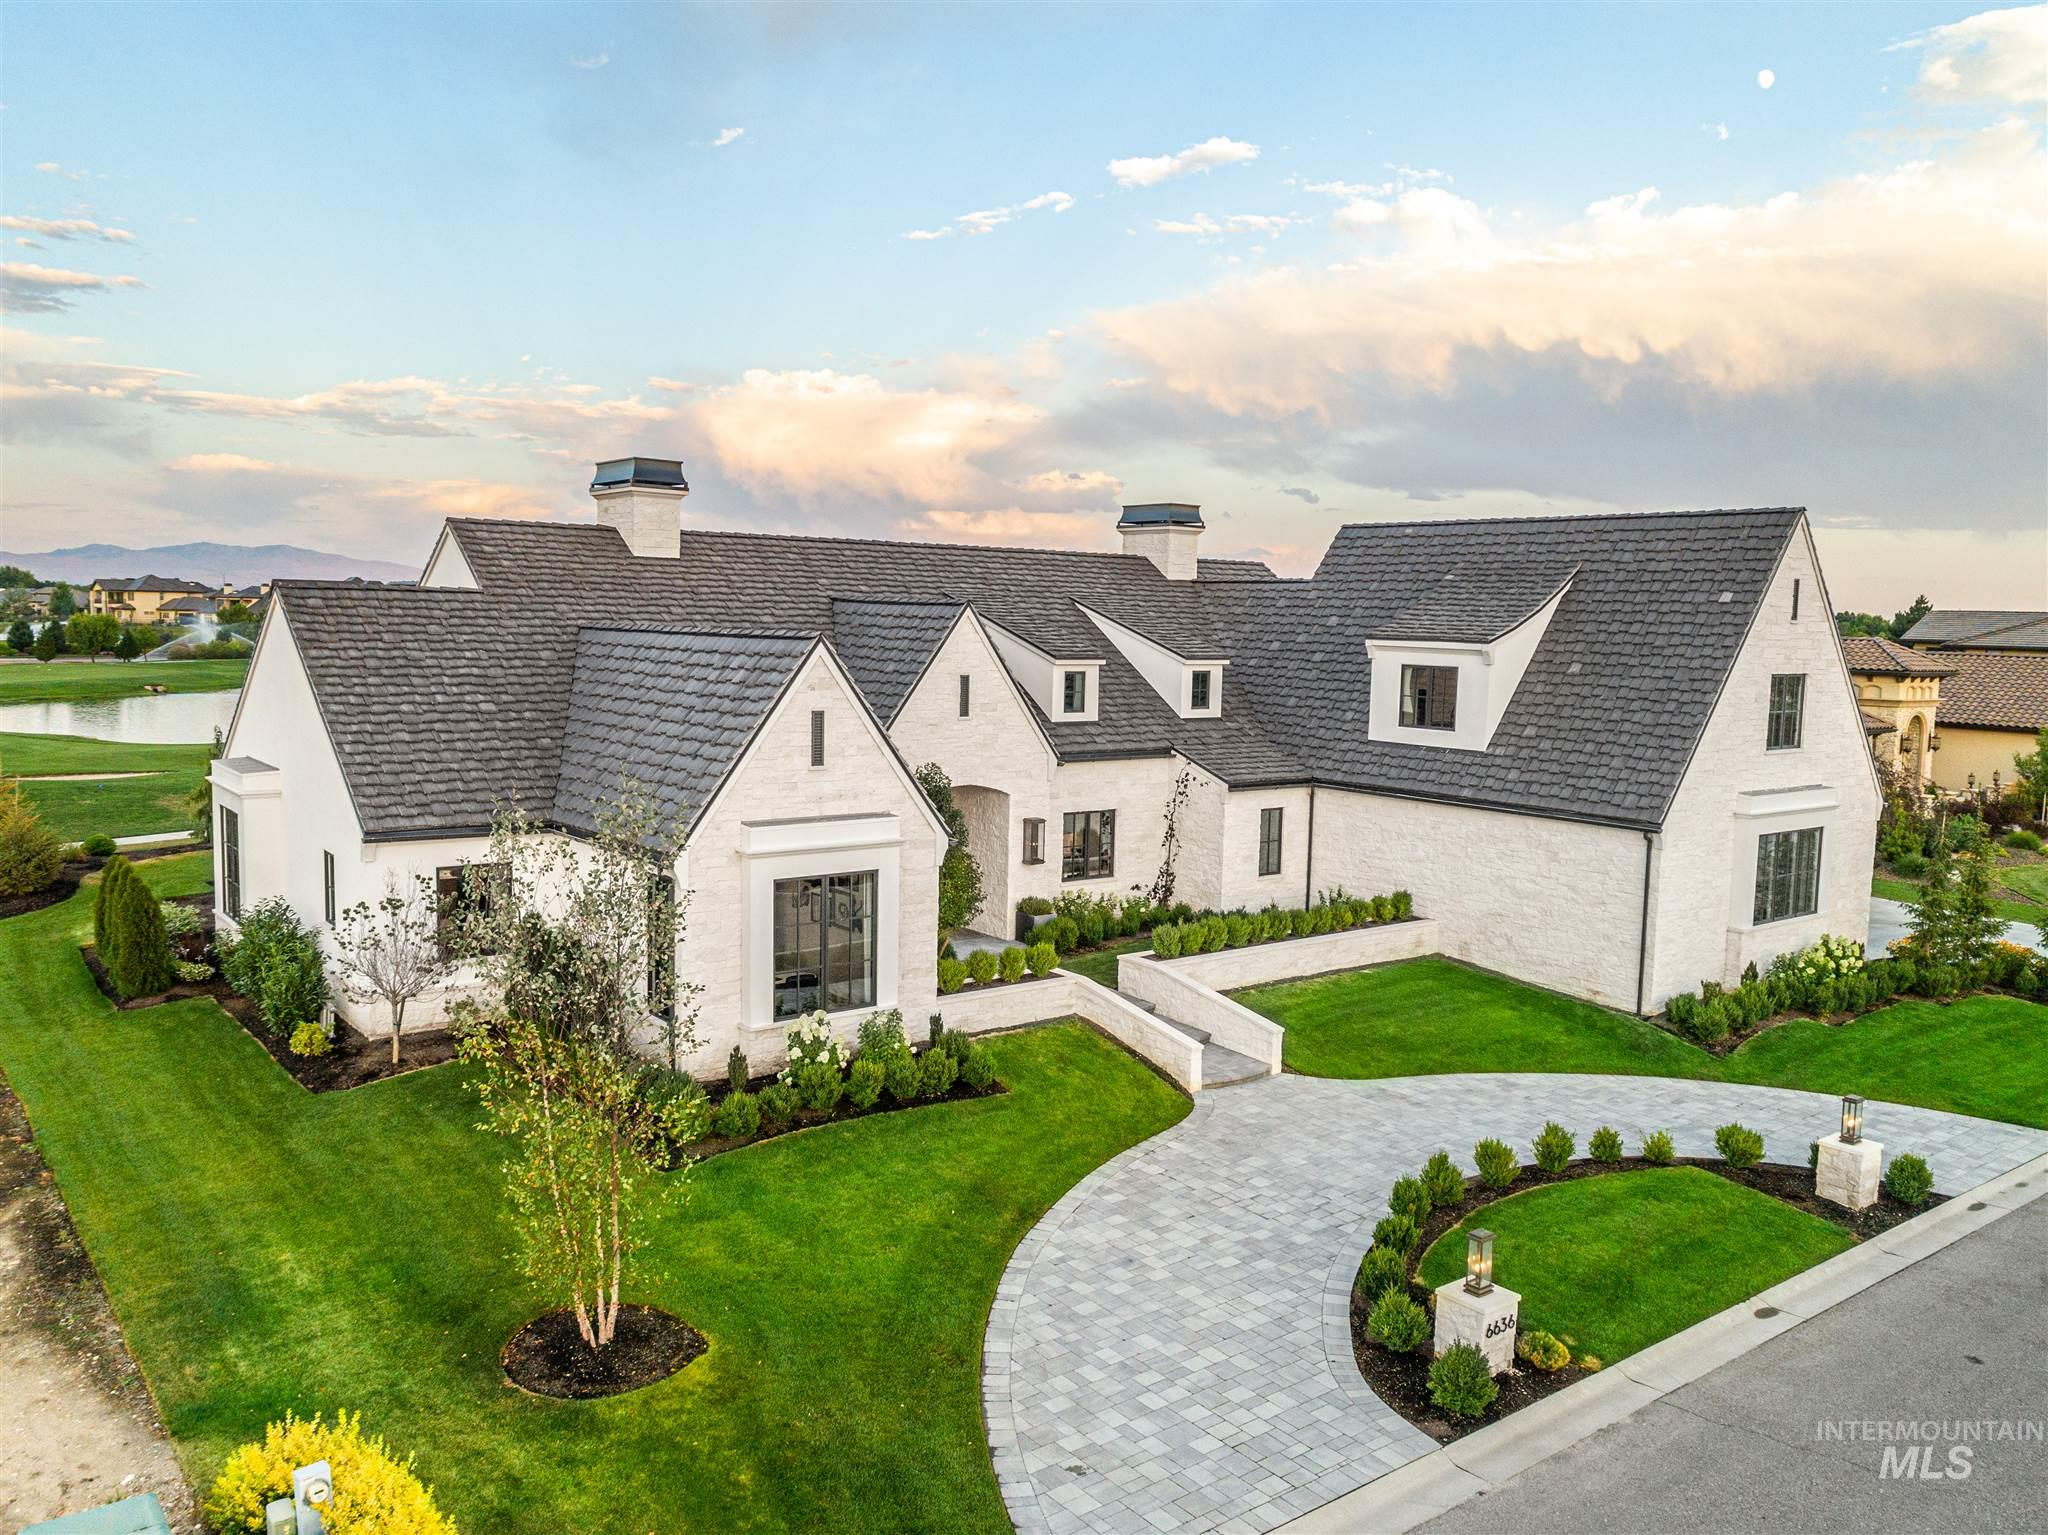 This level of perfection and artistry can only come from the award winning Northern Construction and architect Trey Hoff. Timeless architectural balanced with exquisite craftsmanship that is a step above the rest, prominently poised with relaxing pond views in the very desirable Spurwing Challenge Estates. Features include Crestron home automation, Gas lanterns, Rich wood beams, Stunning hand crafted limestone fireplace, Exquisite top of the line kitchen and bar, Wood fired pizza oven, Walk in Safe & Shop.